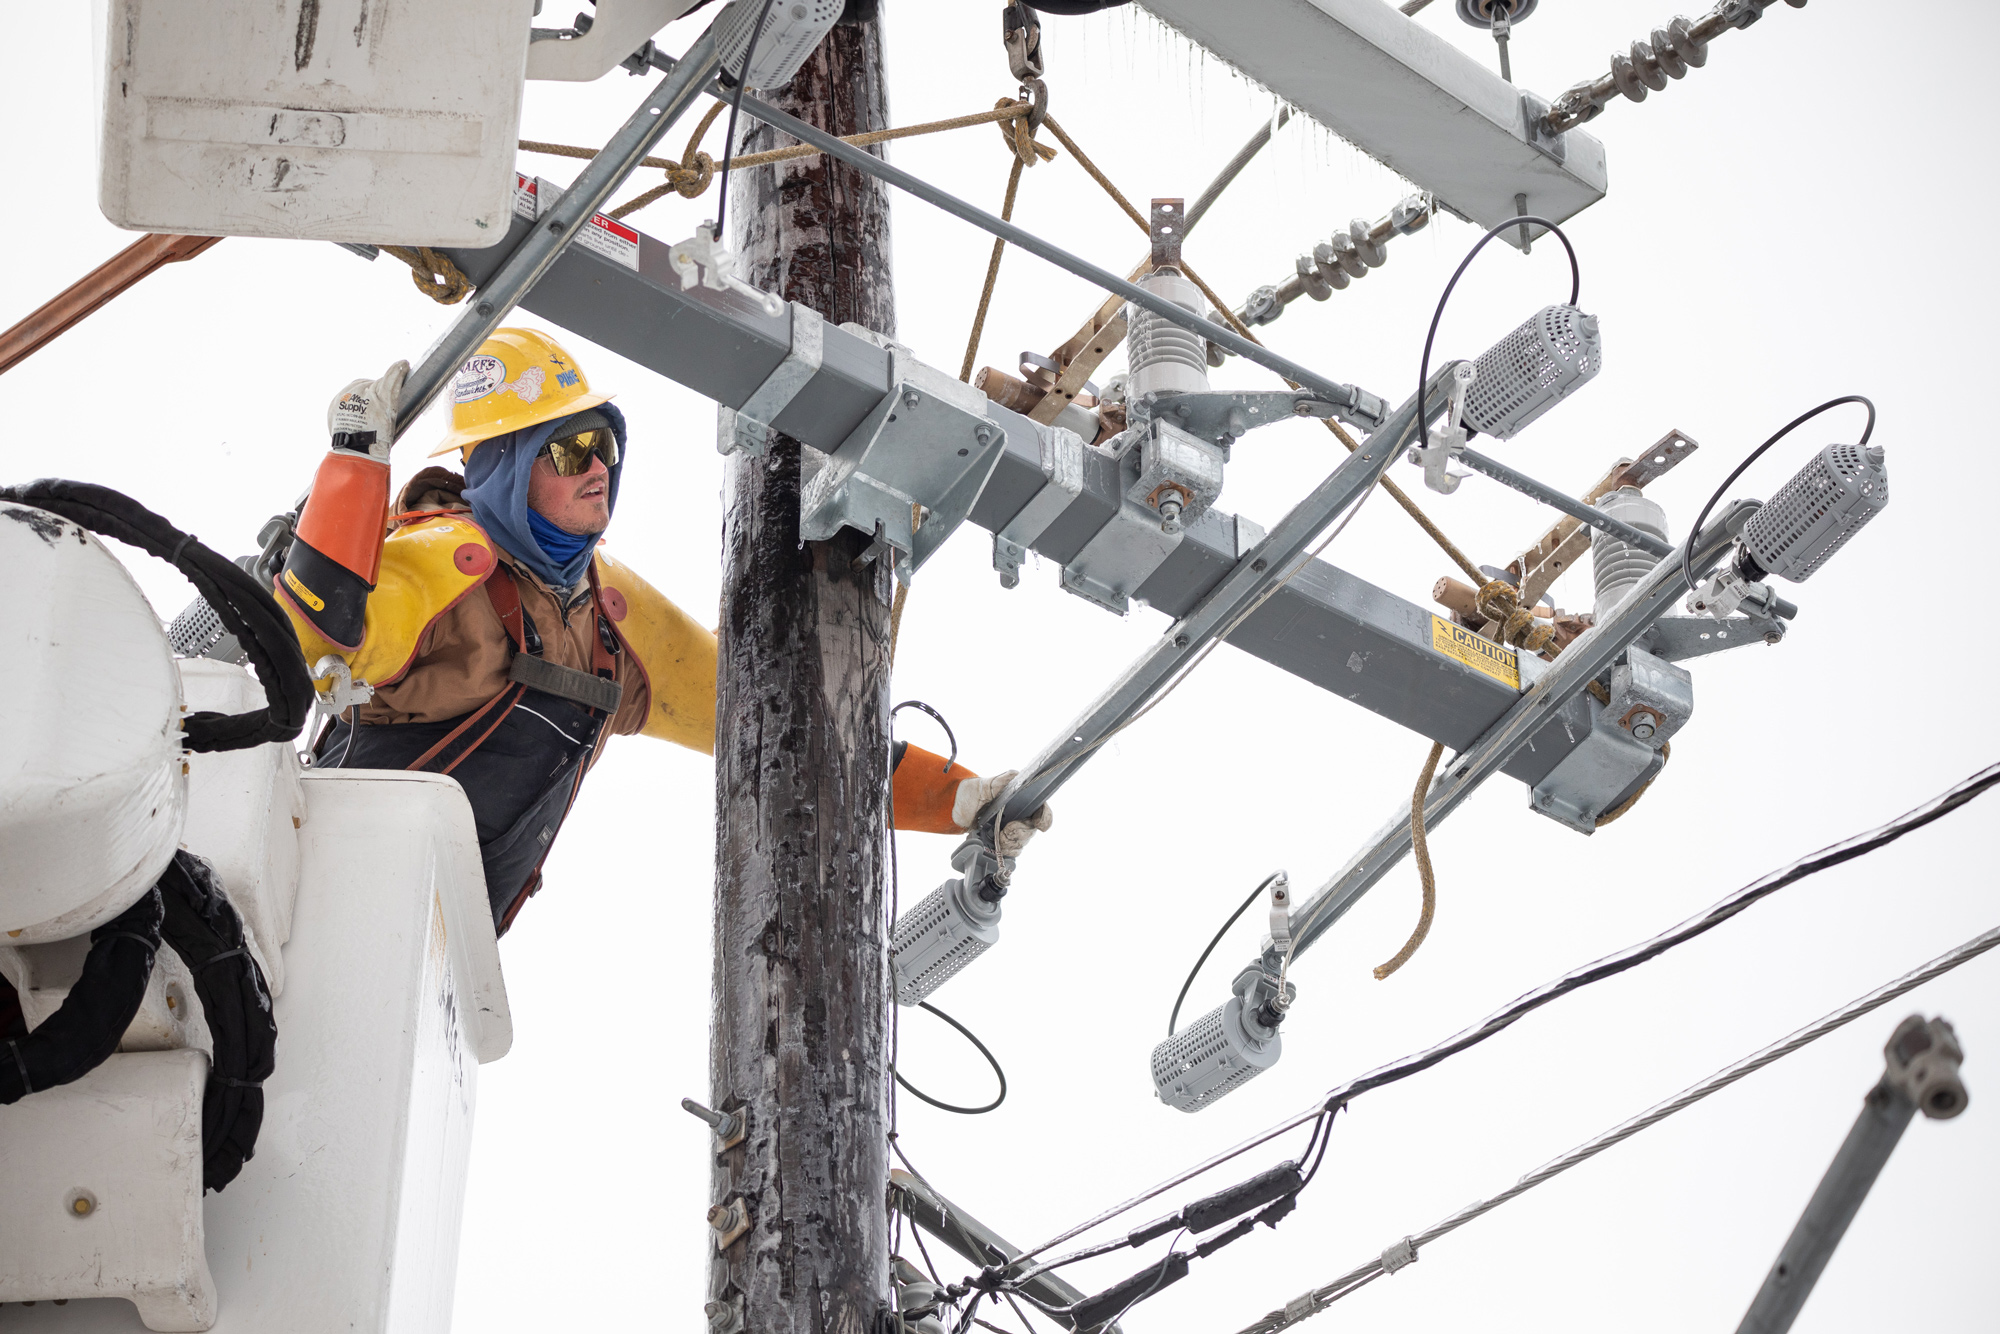 A worker repairs a power line in Austin, Texas, on February 18.